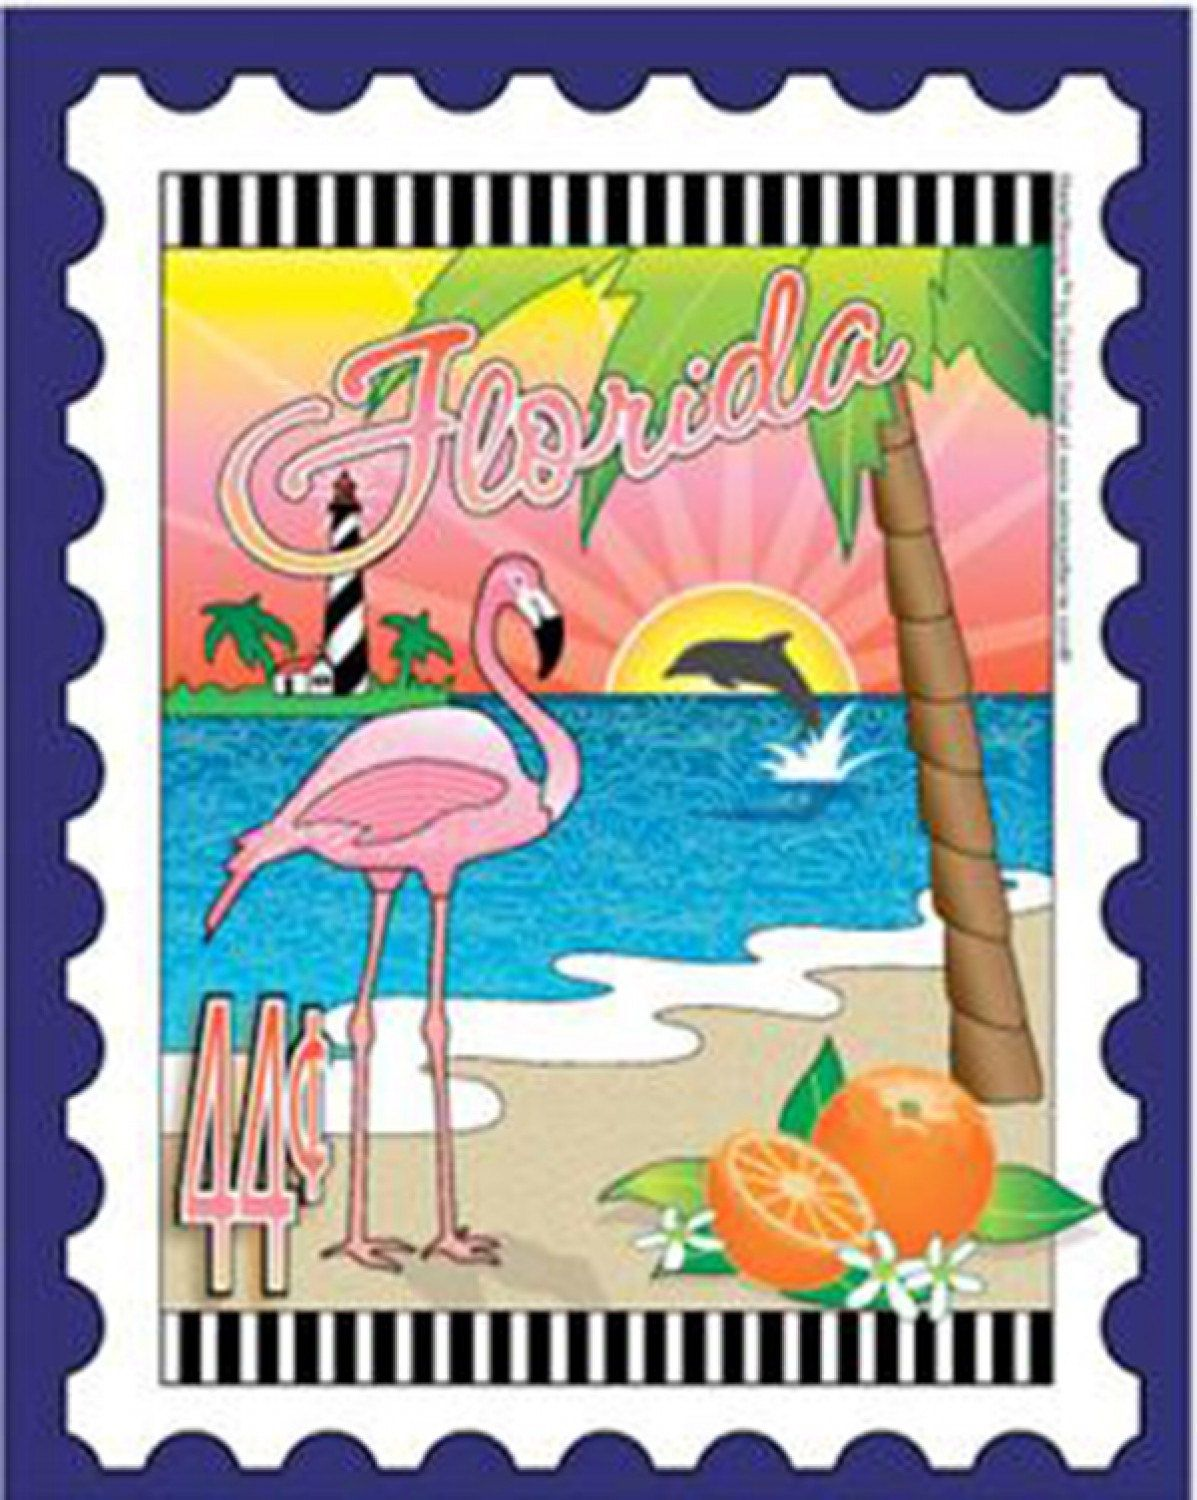 State Stamp Fabric Panel Florida Mini Panel By Debra Gabel For